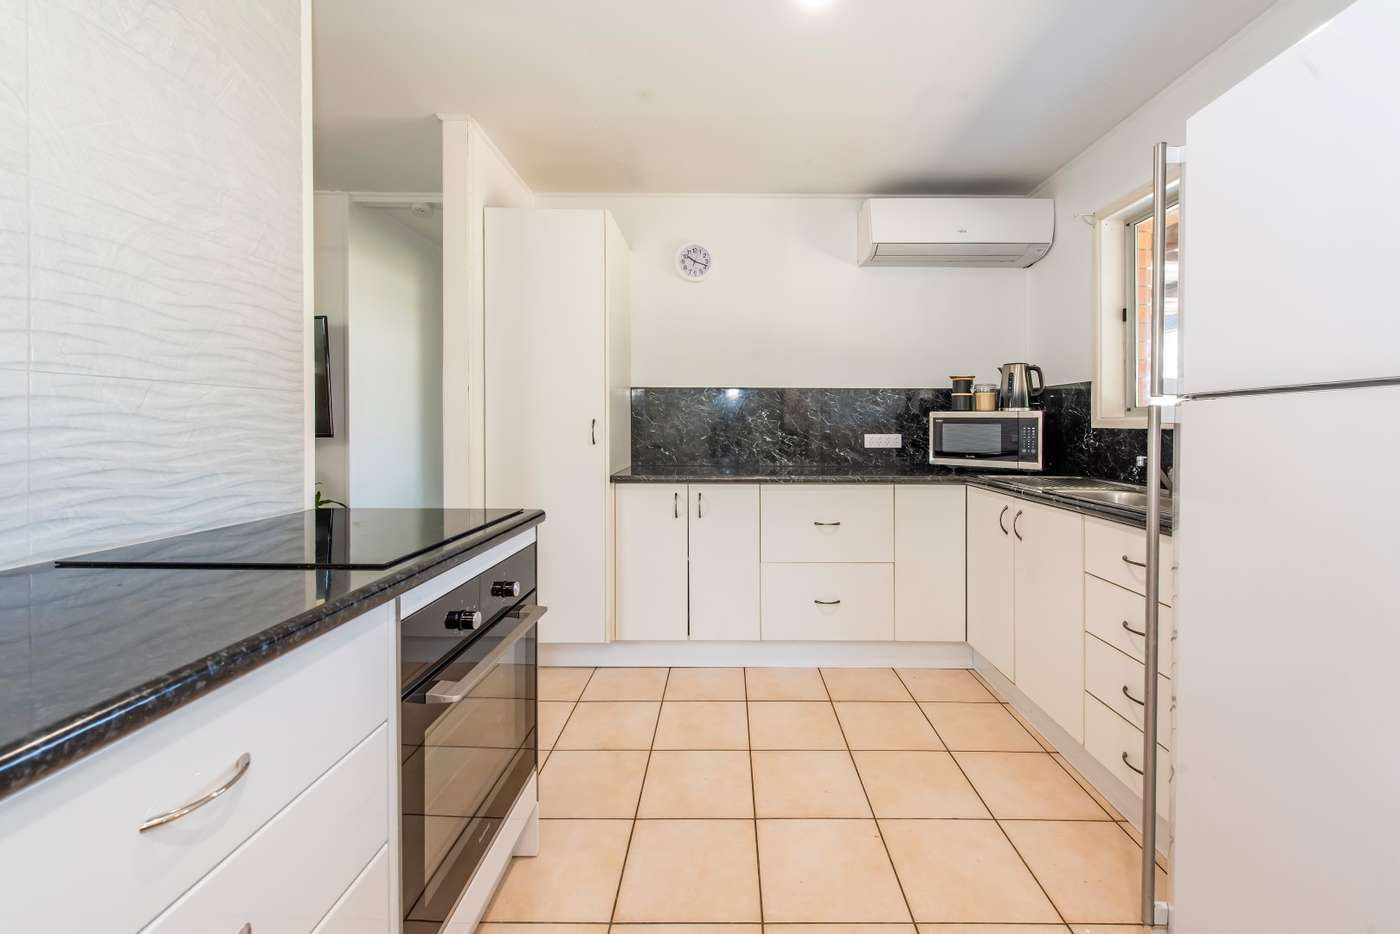 Seventh view of Homely house listing, 24 Beverley Street, East Mackay QLD 4740